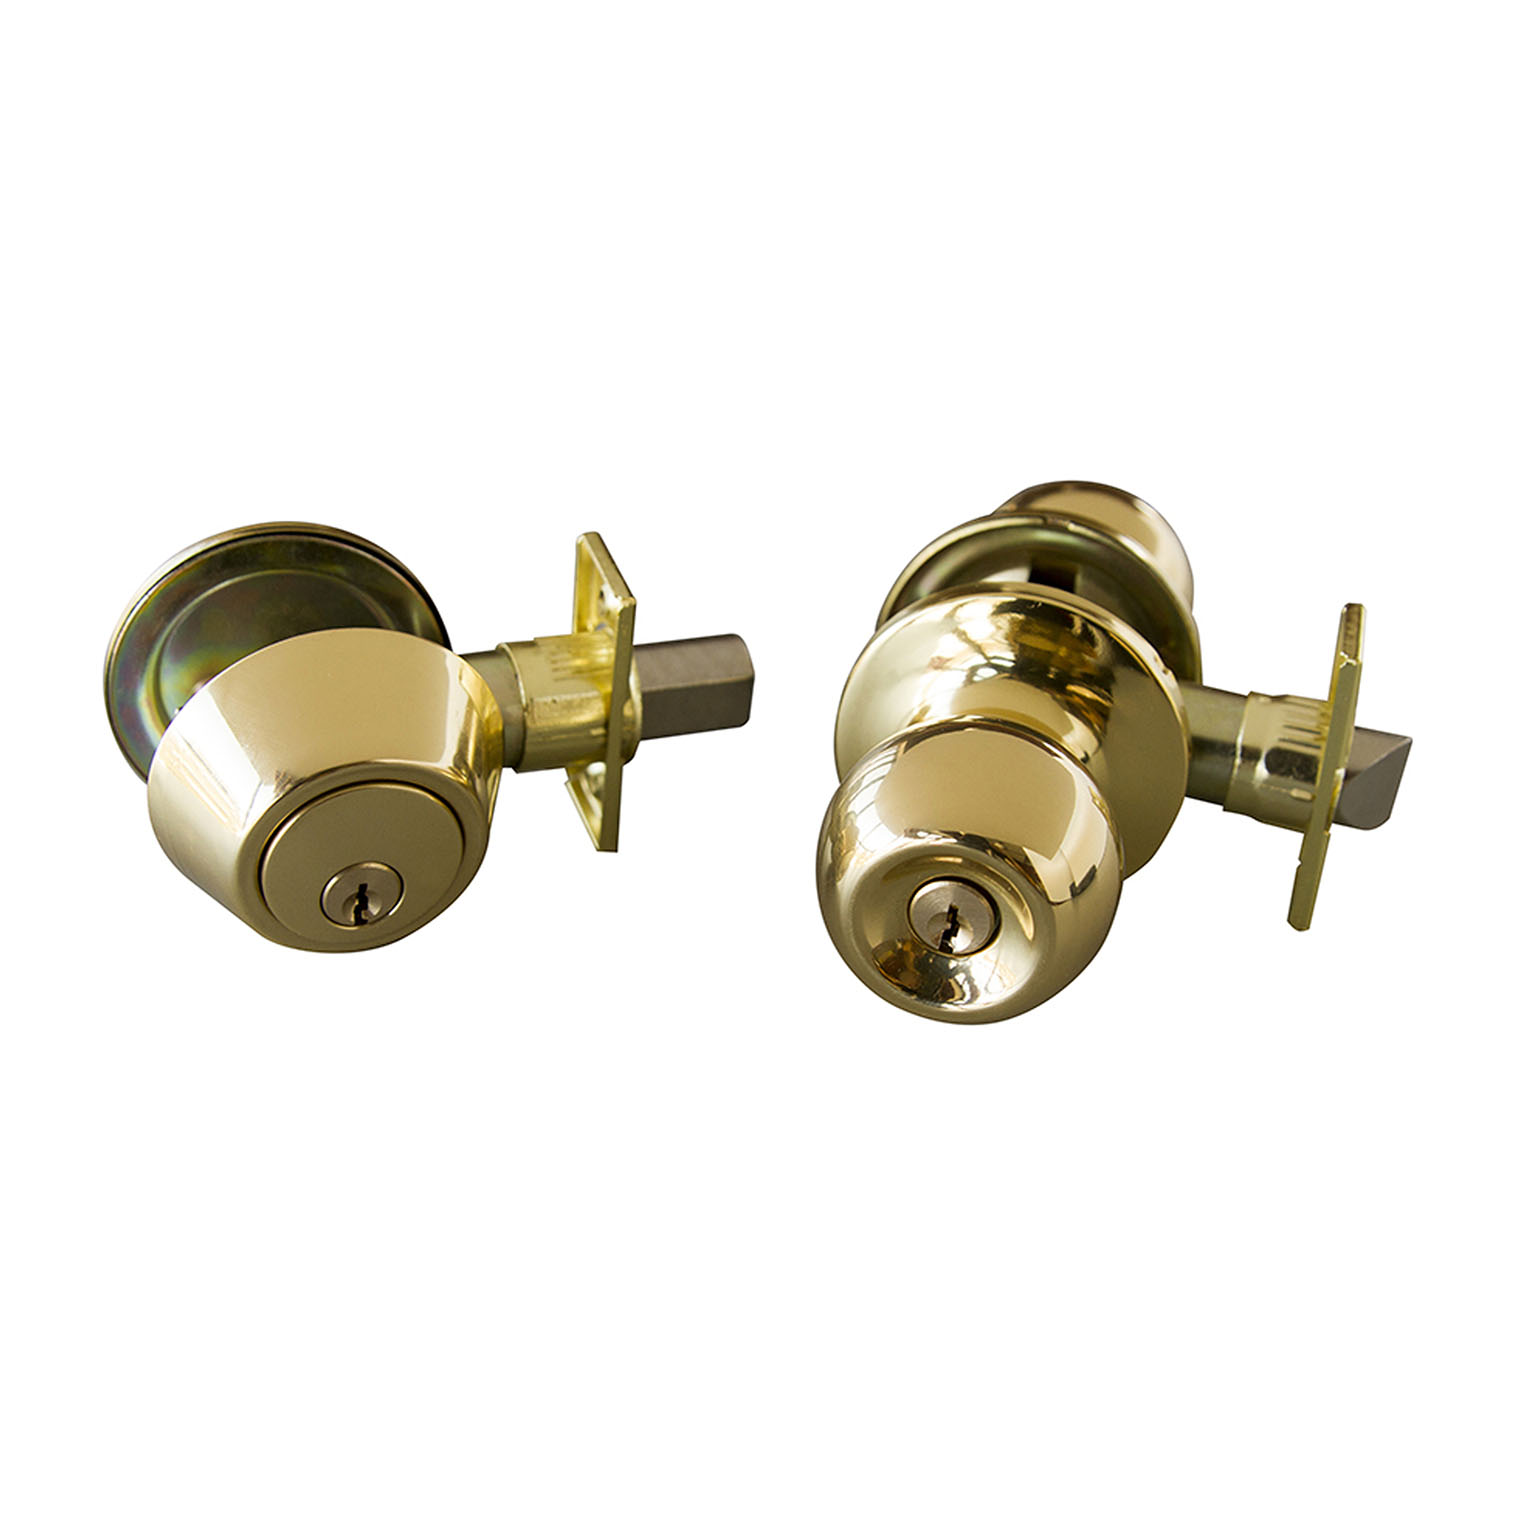 Design House Bay 6-Way Latch Entry Door Knob and Deadbolt Combo, Polished Brass - 727040